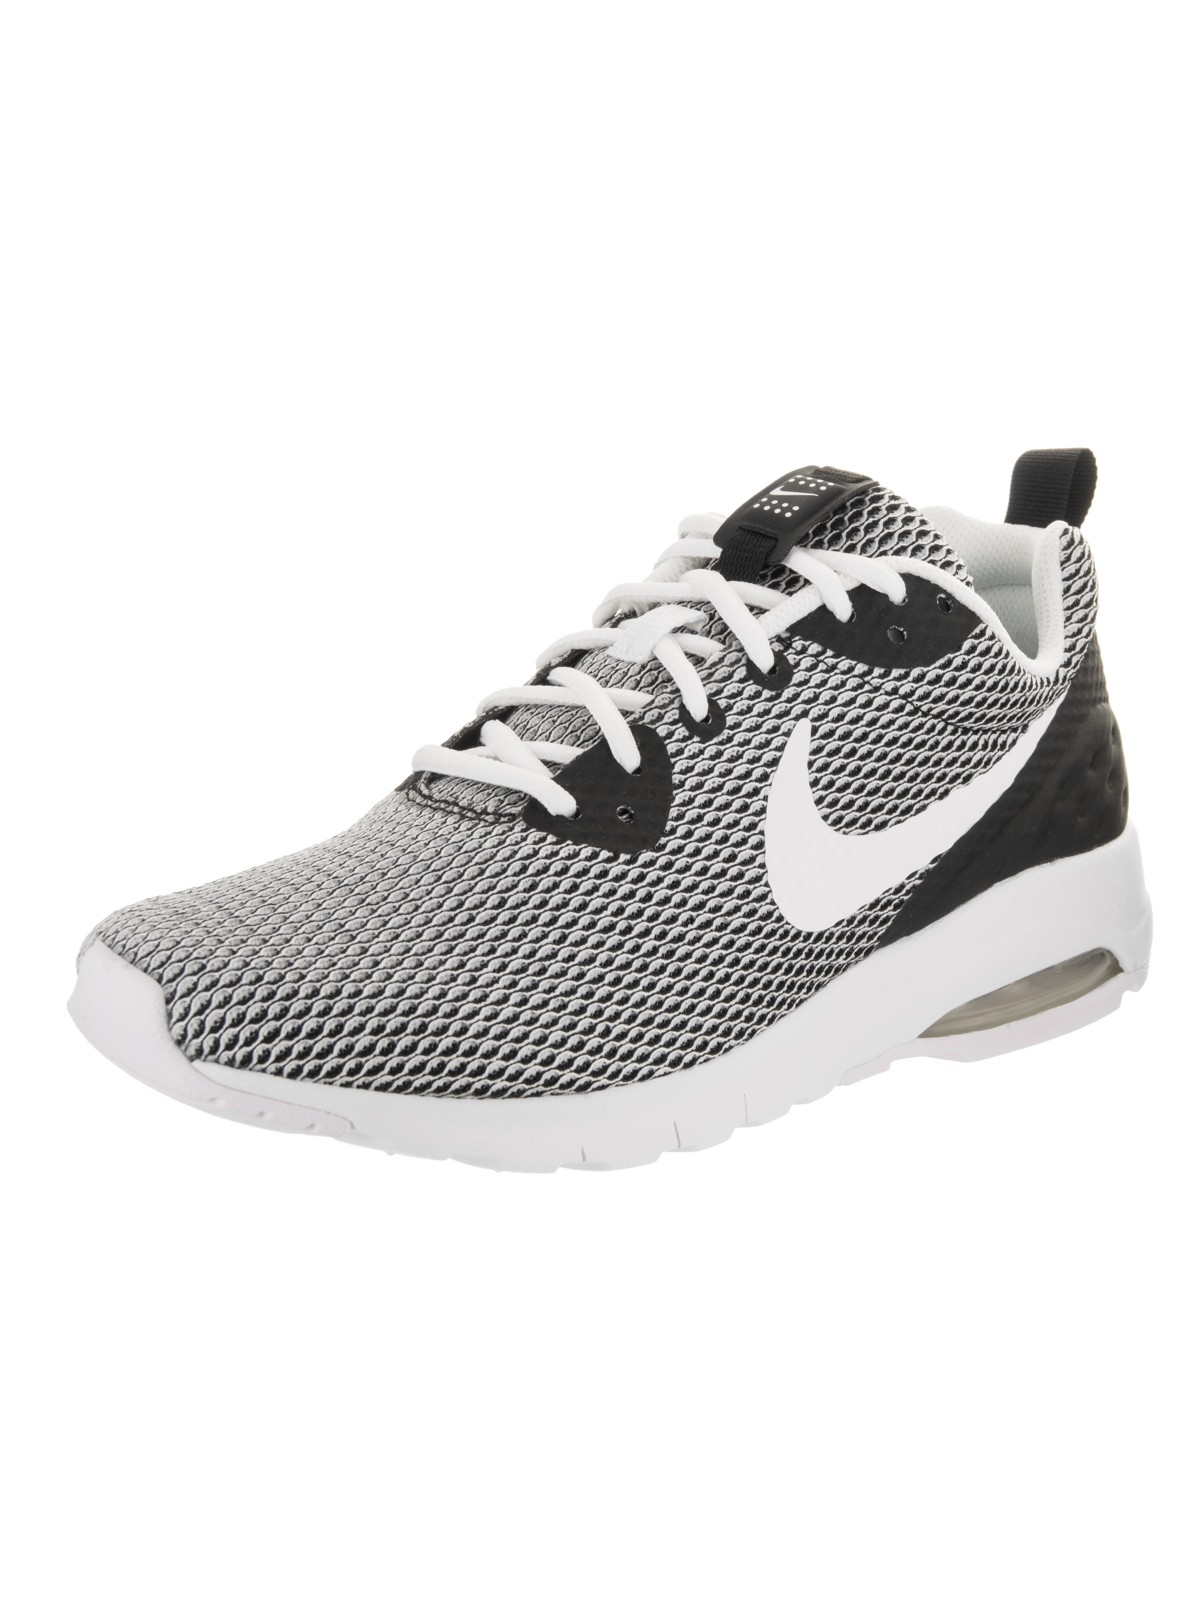 Se Motion Max Lw Nike Men's Shoe Running Air qOAvvH